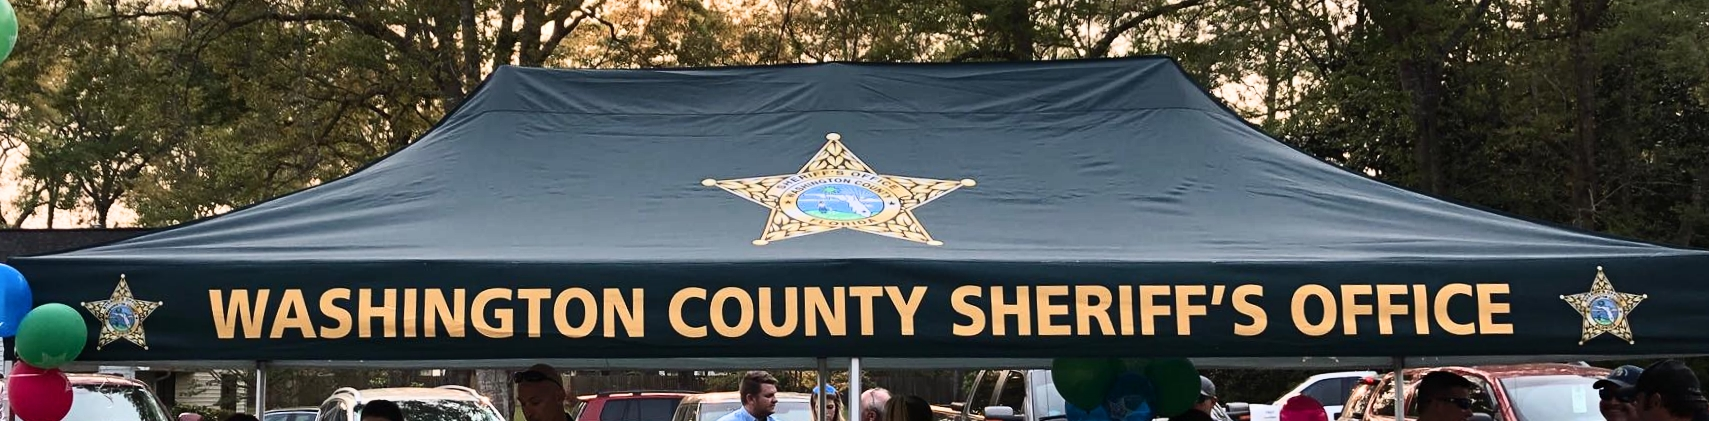 Washington Sheriff Tent